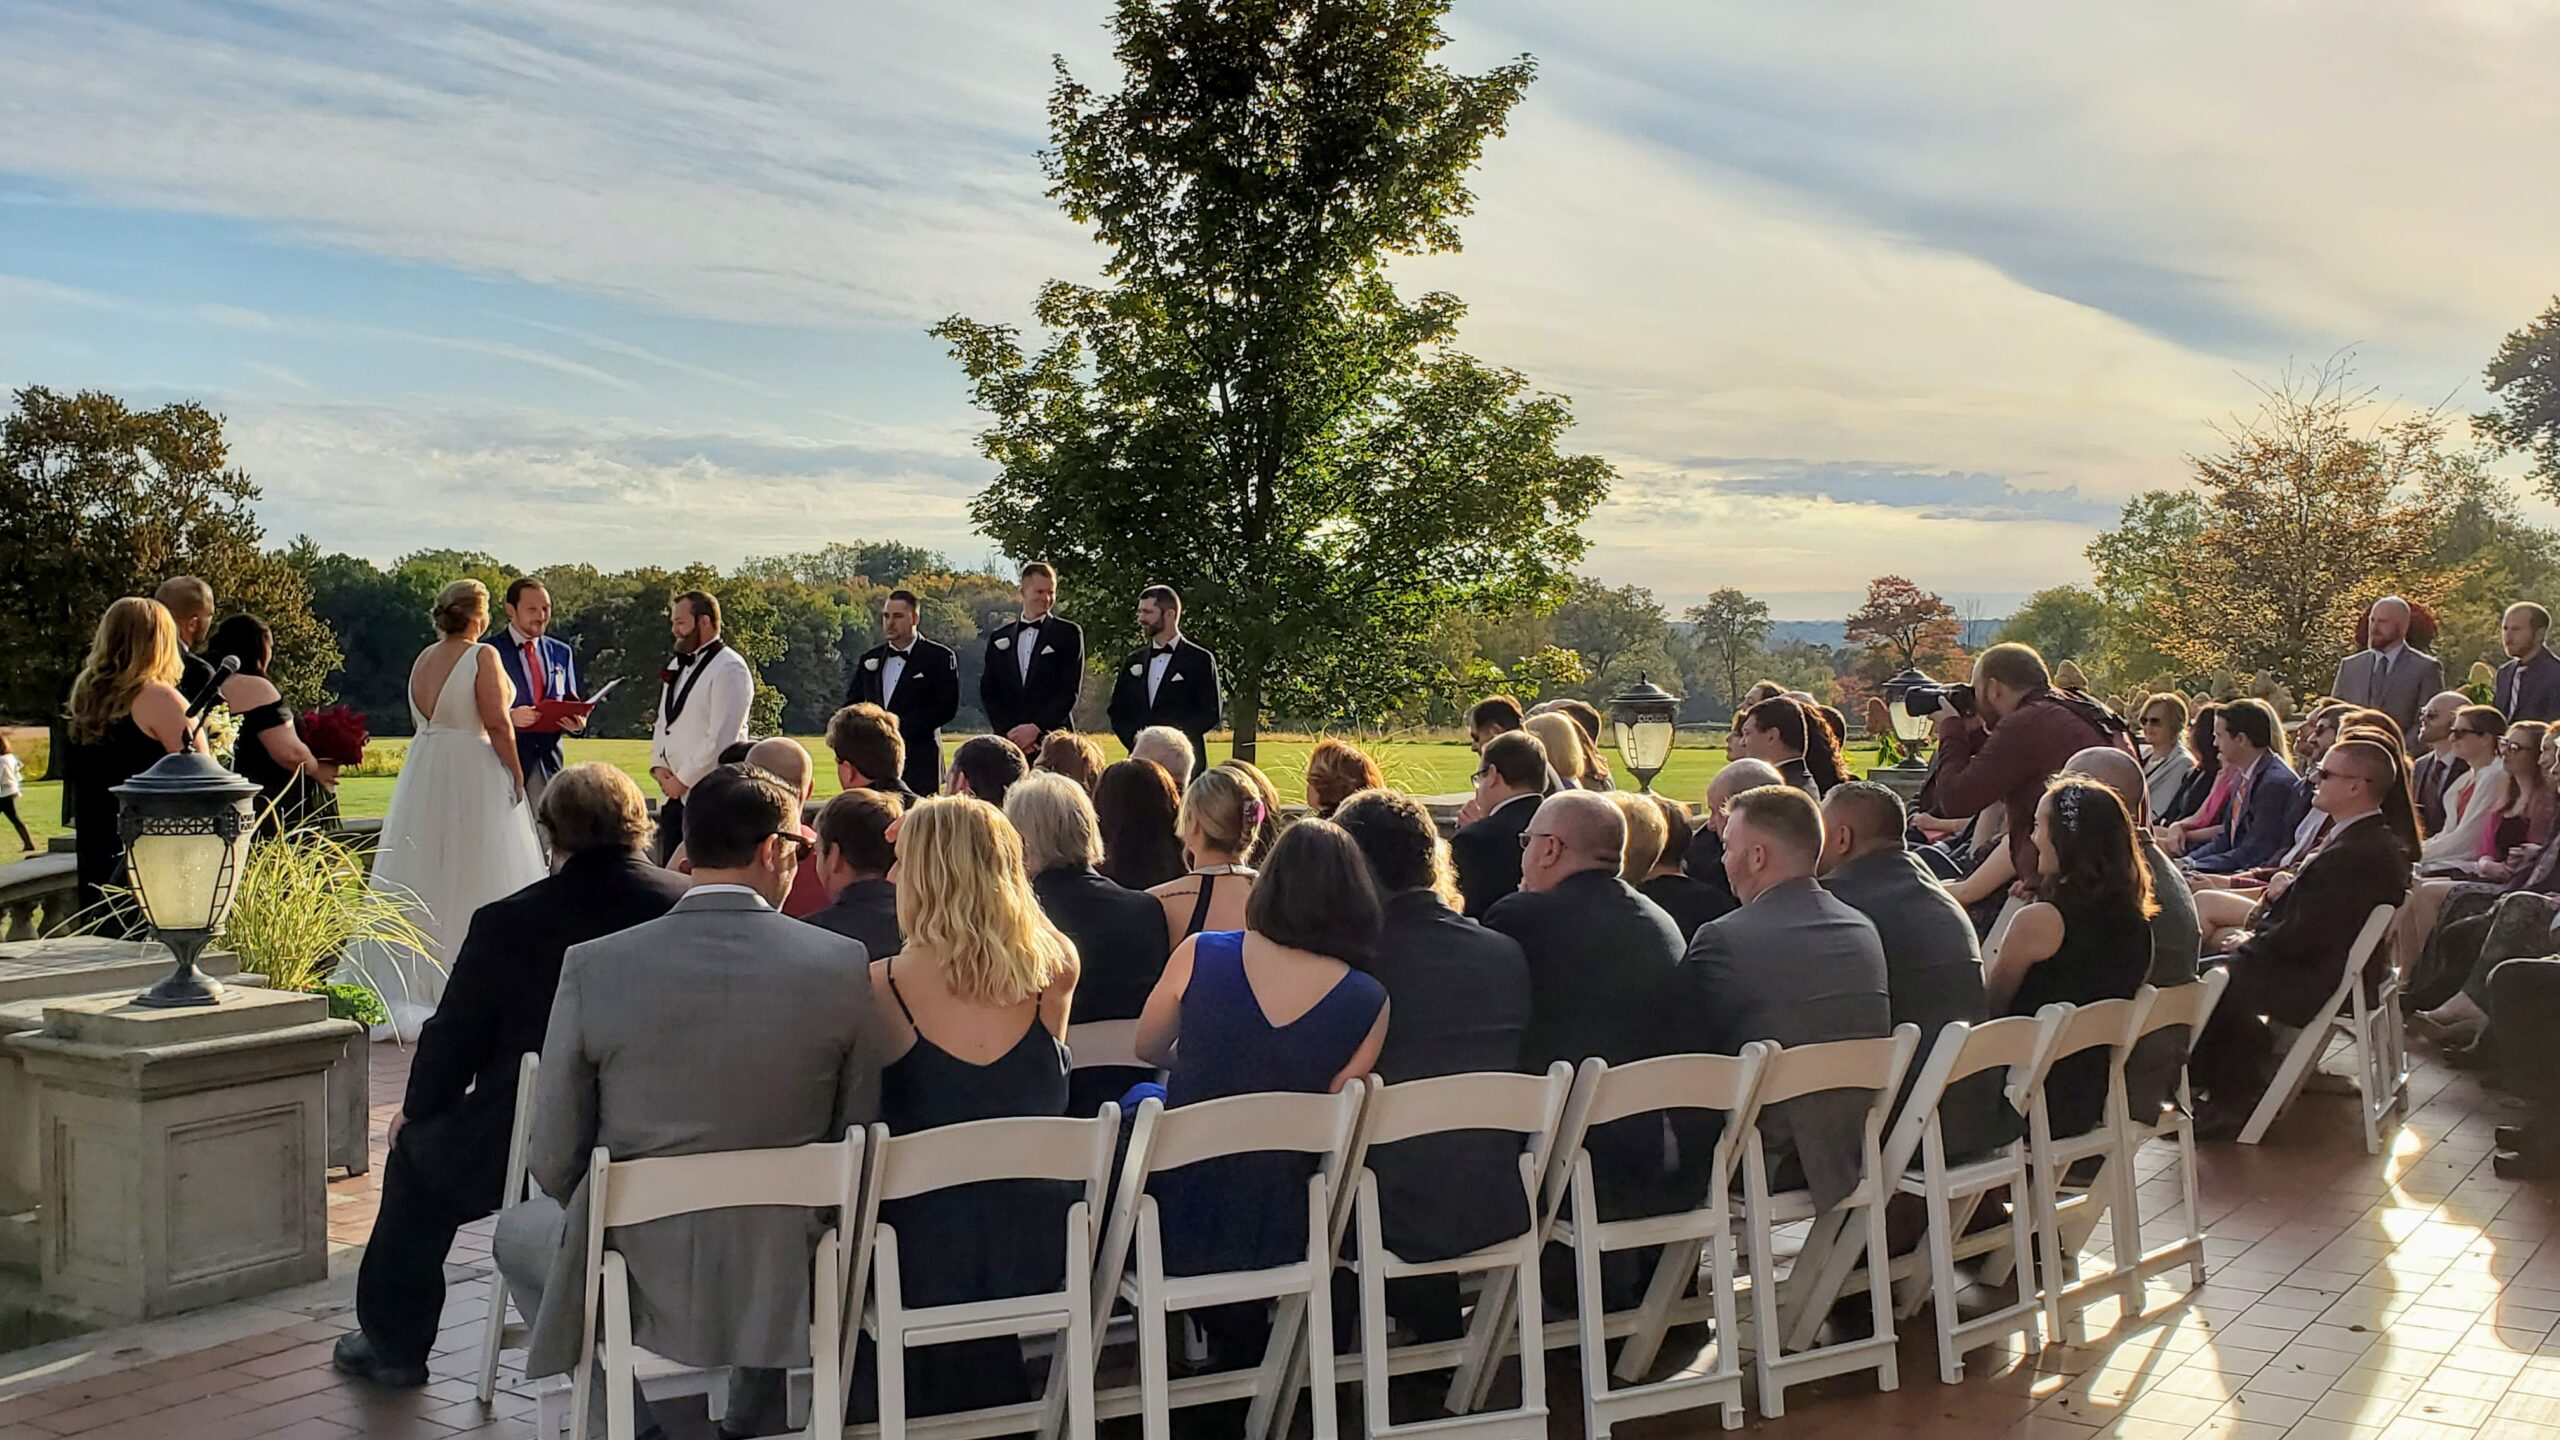 Seated guests at outdoor ceremony at park for Waveny House Wedding